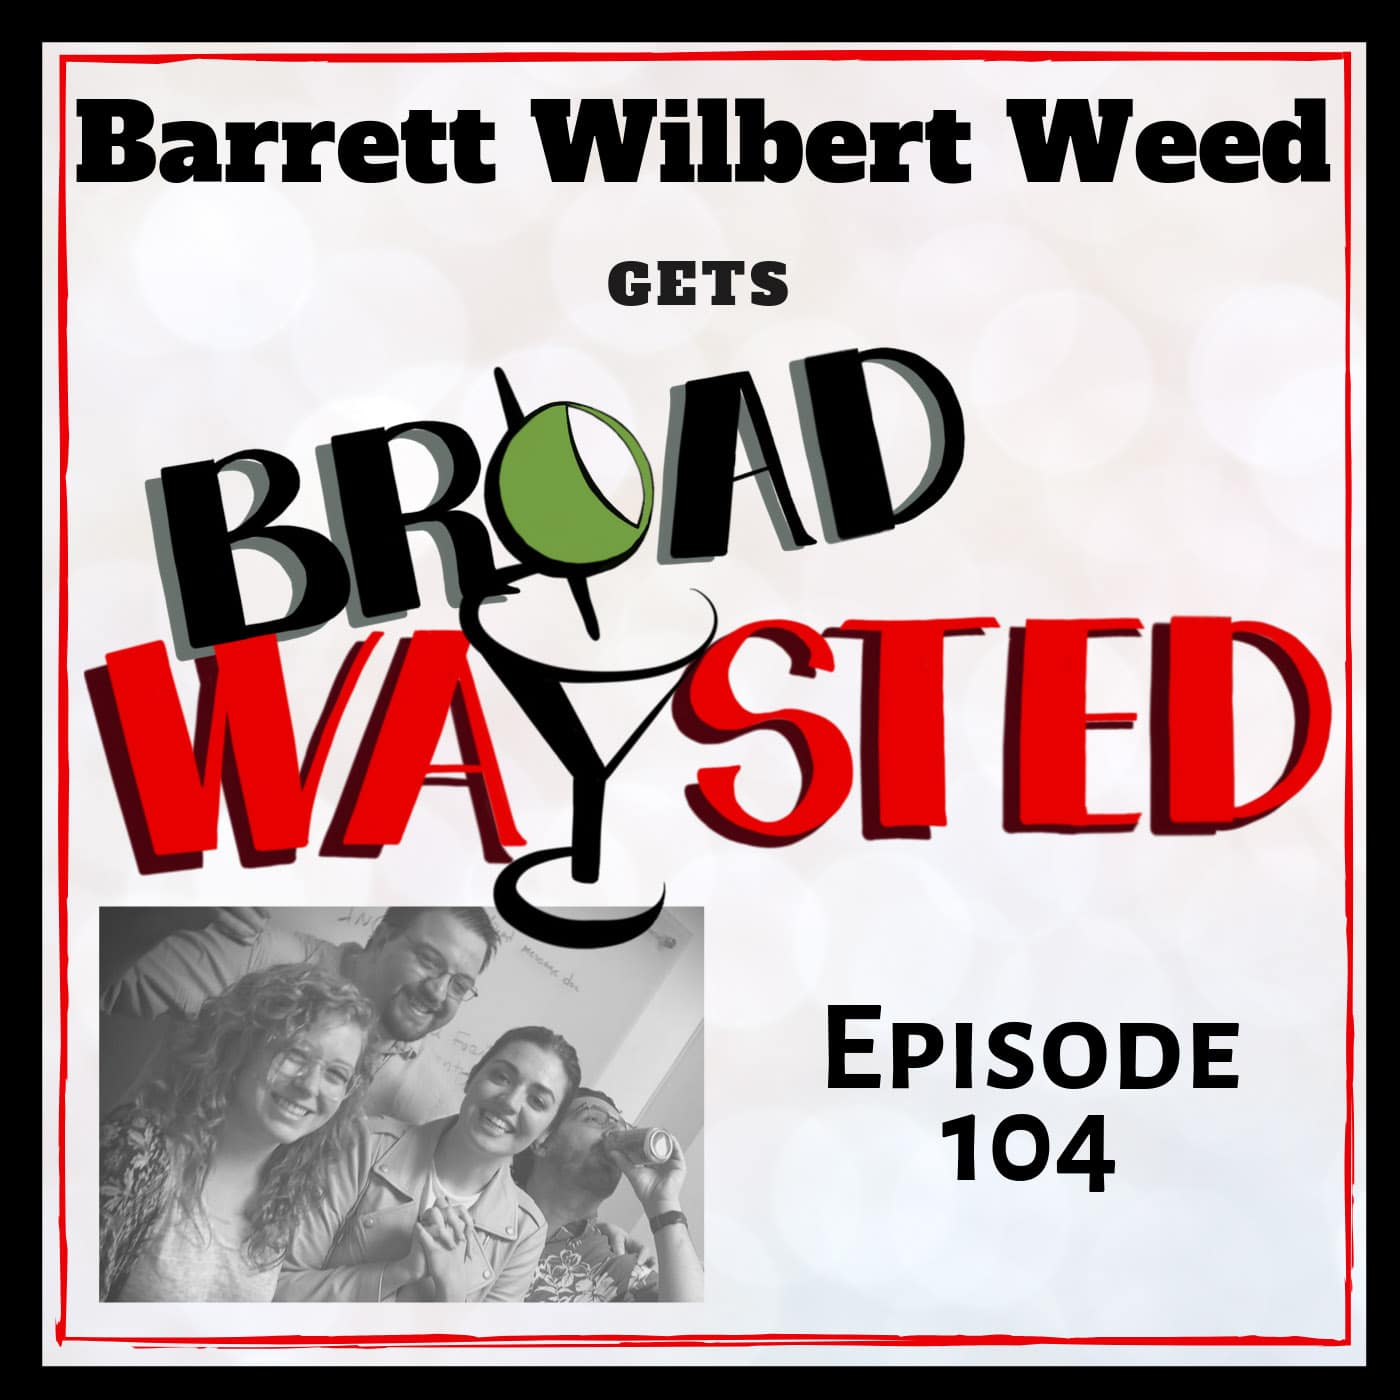 Broadwaysted Ep 104 Barrett Wilbert Weed